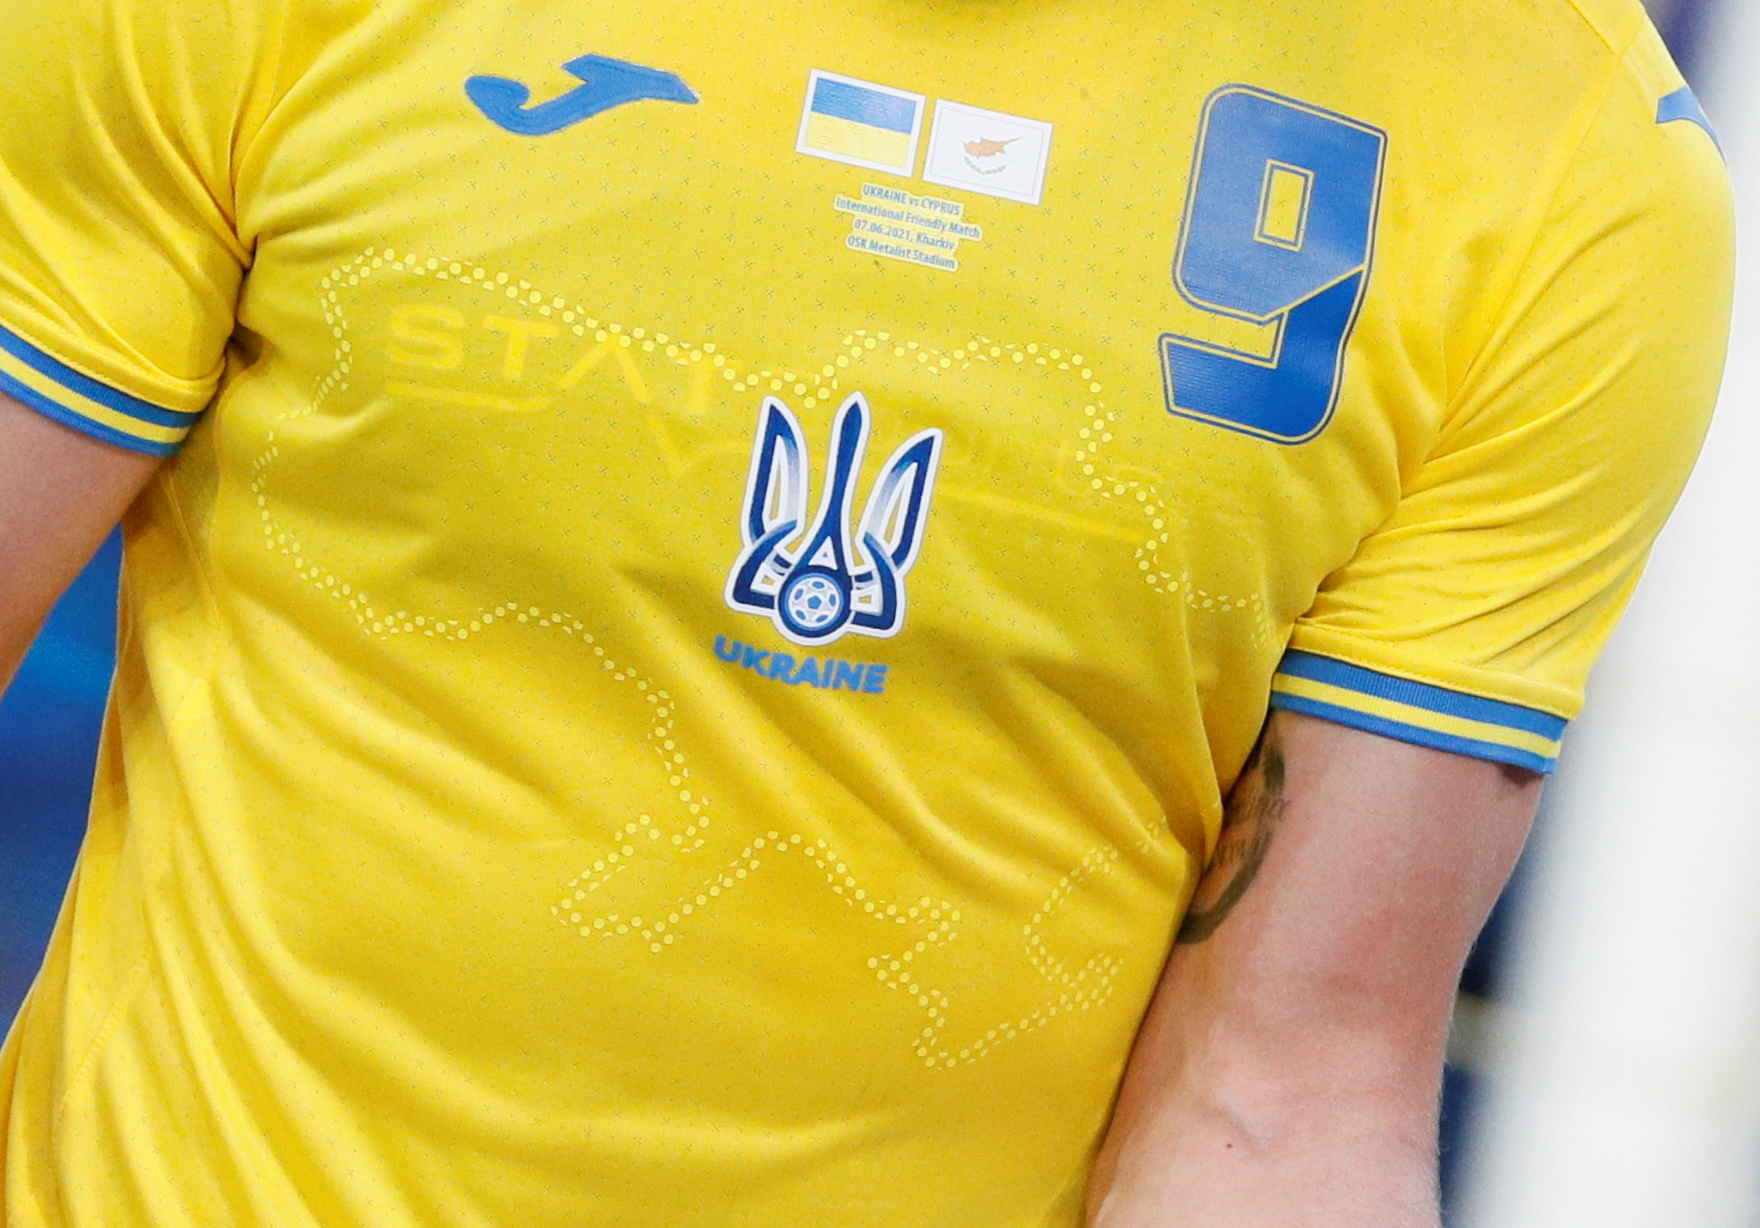 Ukraine's Roman Yaremchuk wears the newly unveiled national team jersey emblazoned with a map of Ukraine that includes Crimea during an international friendly match against Cyprus in Kharkiv, Ukraine, June 7, 2021 REUTERS/Gleb Garanich/File Photo